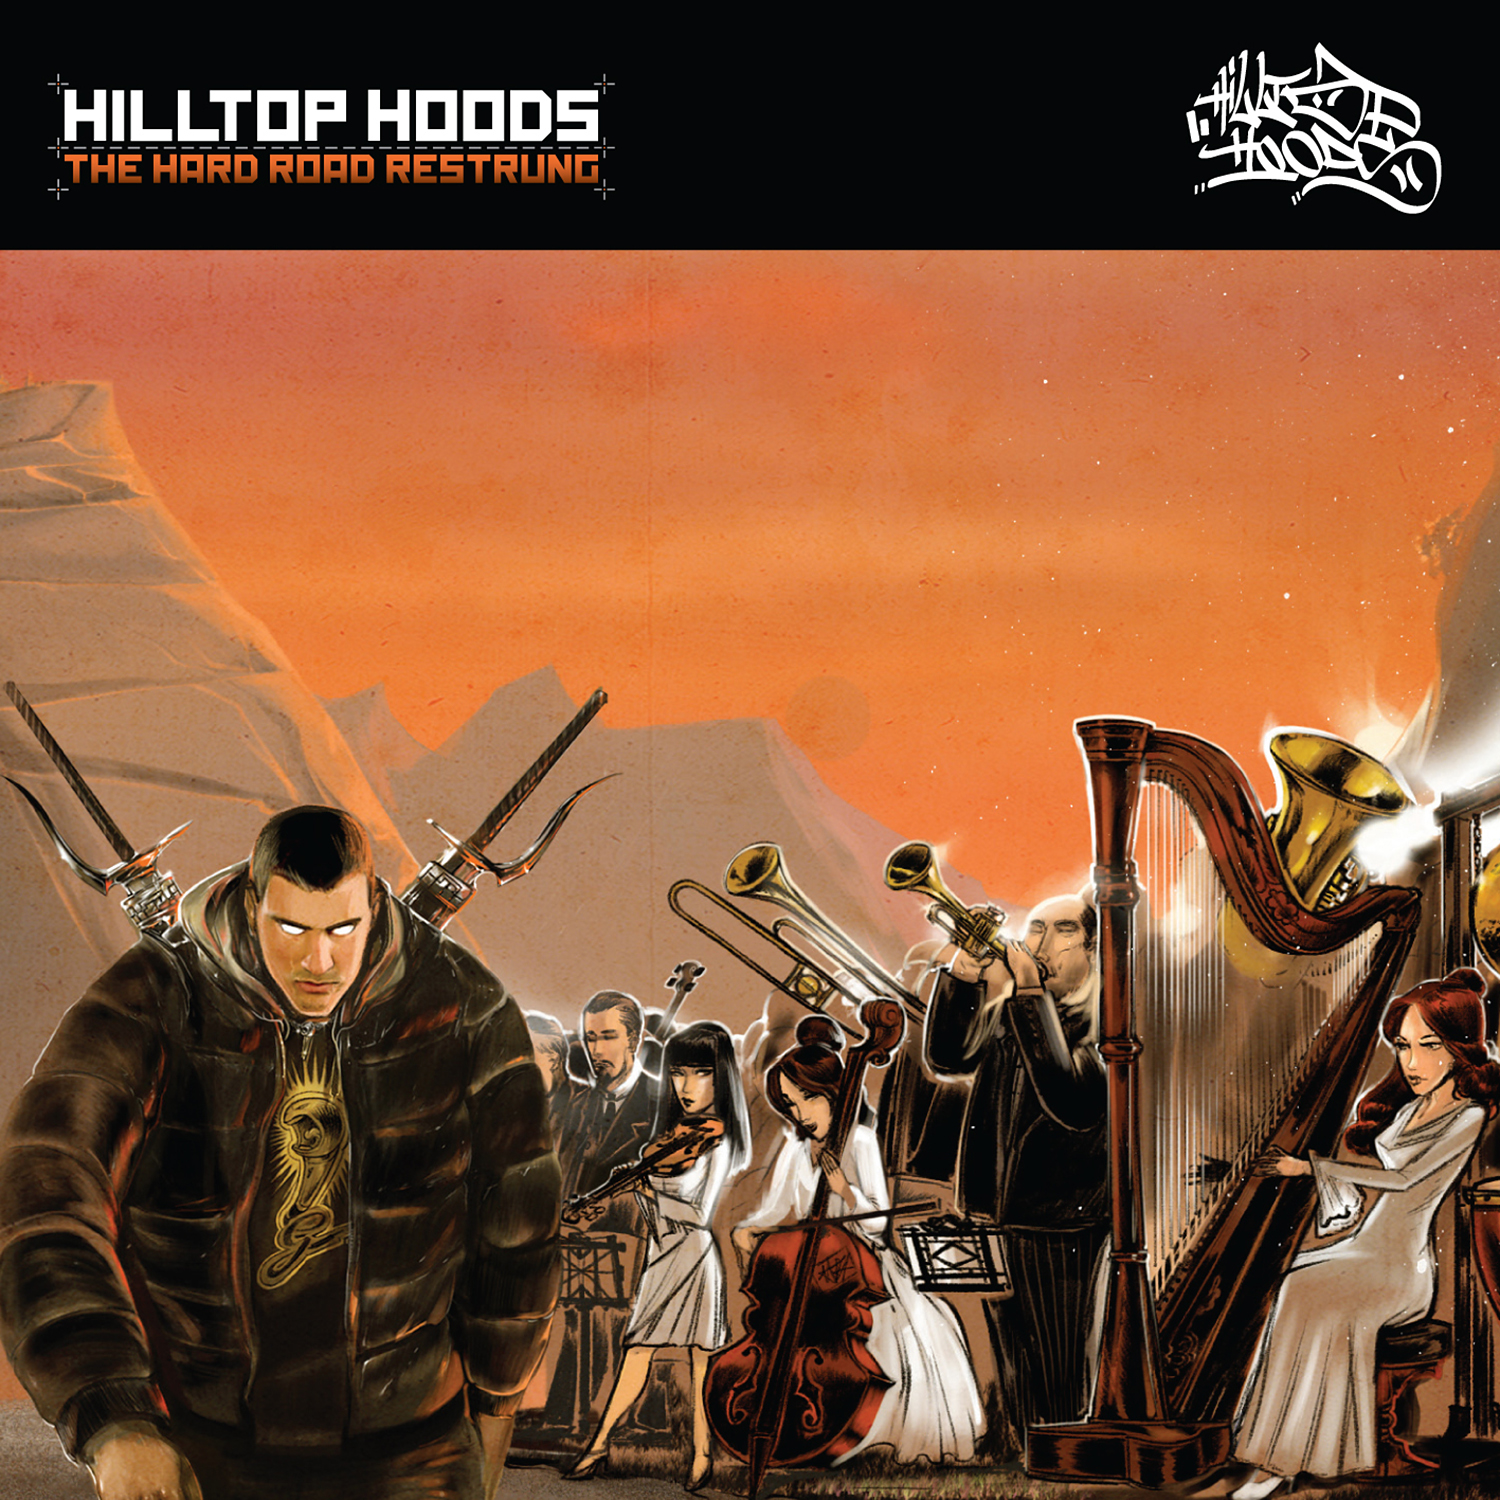 HILLTOP HOODS: THE HARD ROAD RESTRUNG